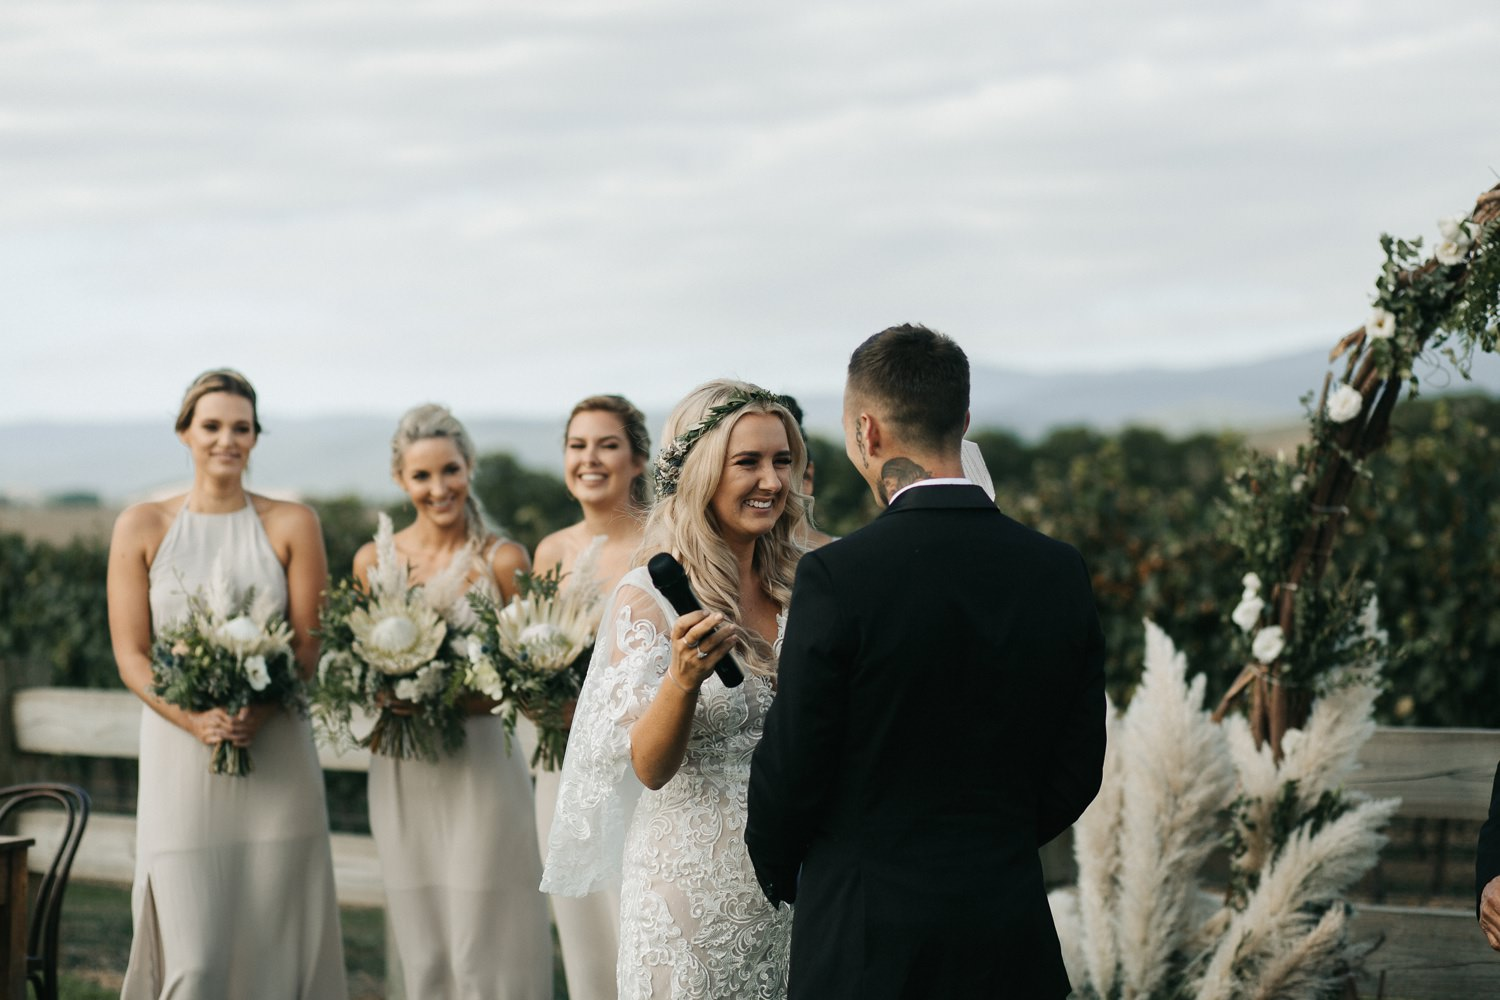 zonzo-estate-yarra-valley-wedding-photographer_0063.jpg